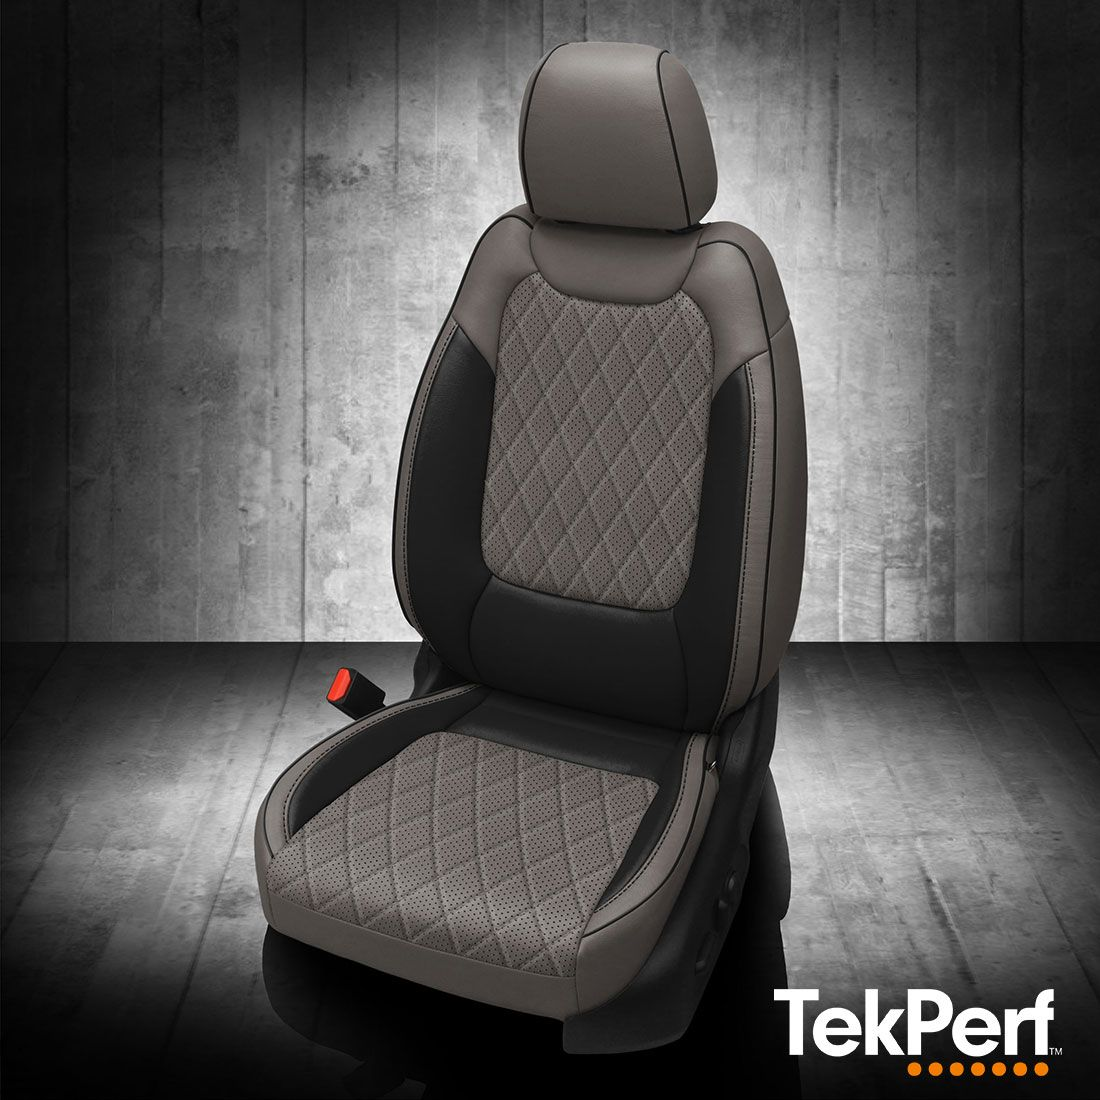 You've seen our TekStitch and our perforated leather, but have you seen TekPerf?! 👀  #tekstitch #perforatedleather #custommade #ordermade #carinterior #carupholstery #craftedleather #carlifestyle #loveyourdrive #becauseclothsucks #leatherisbetter #katzkin #katzkinleather https://t.co/7ZqpAcXjcY